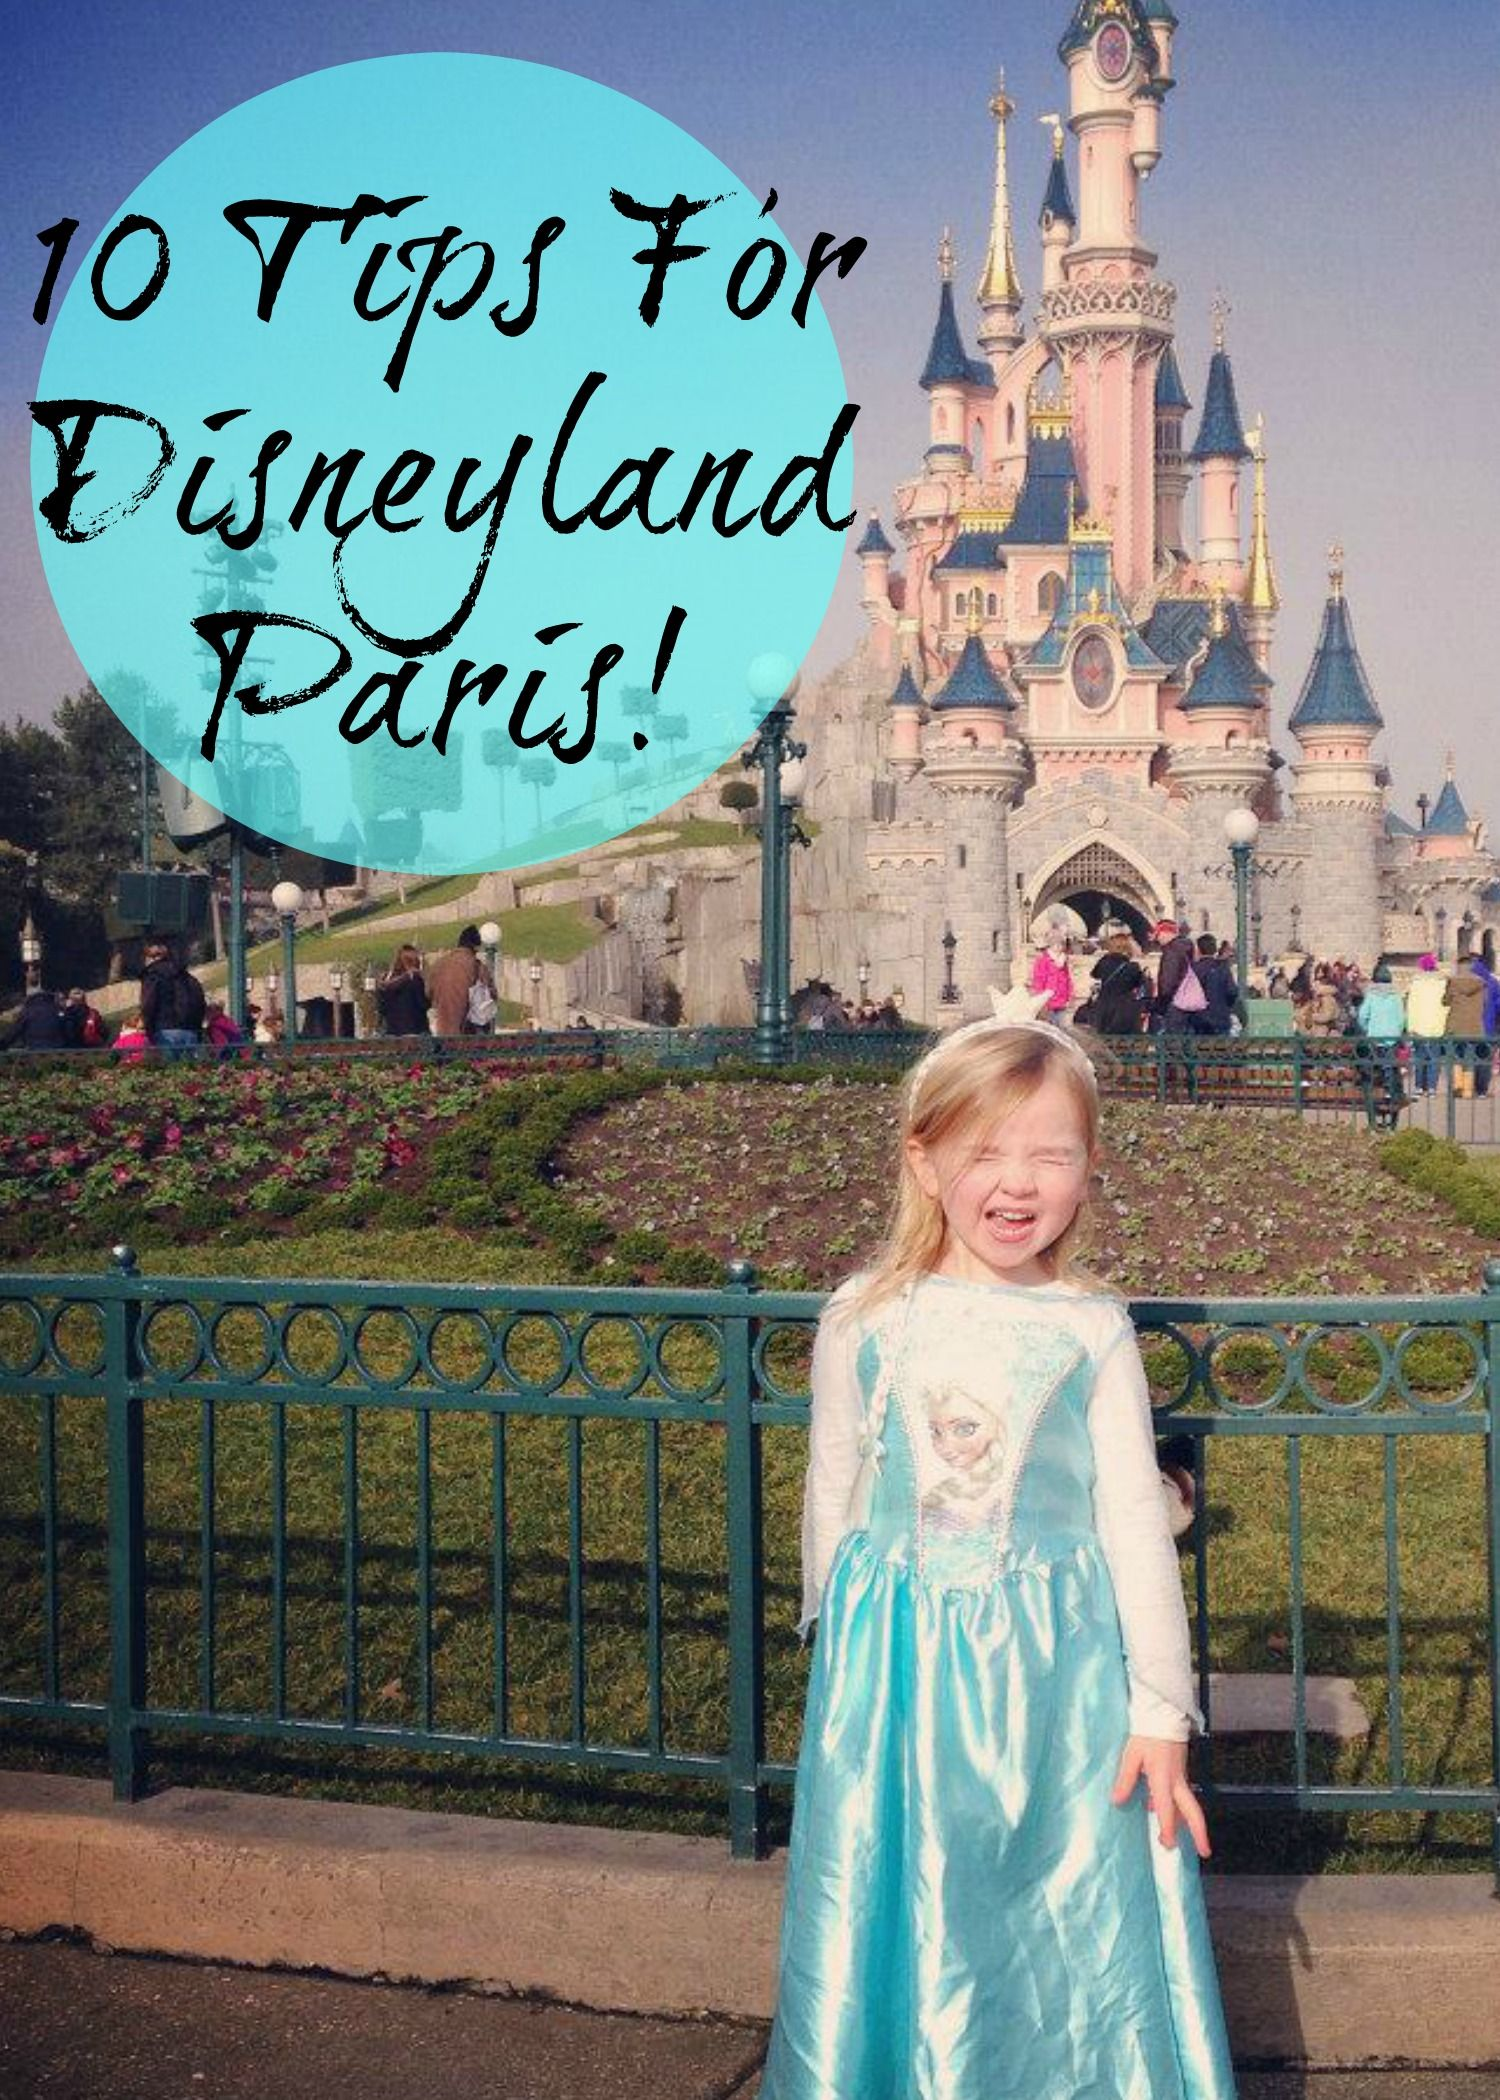 Delightful Disneyland: Tips I'd Tell My Mates